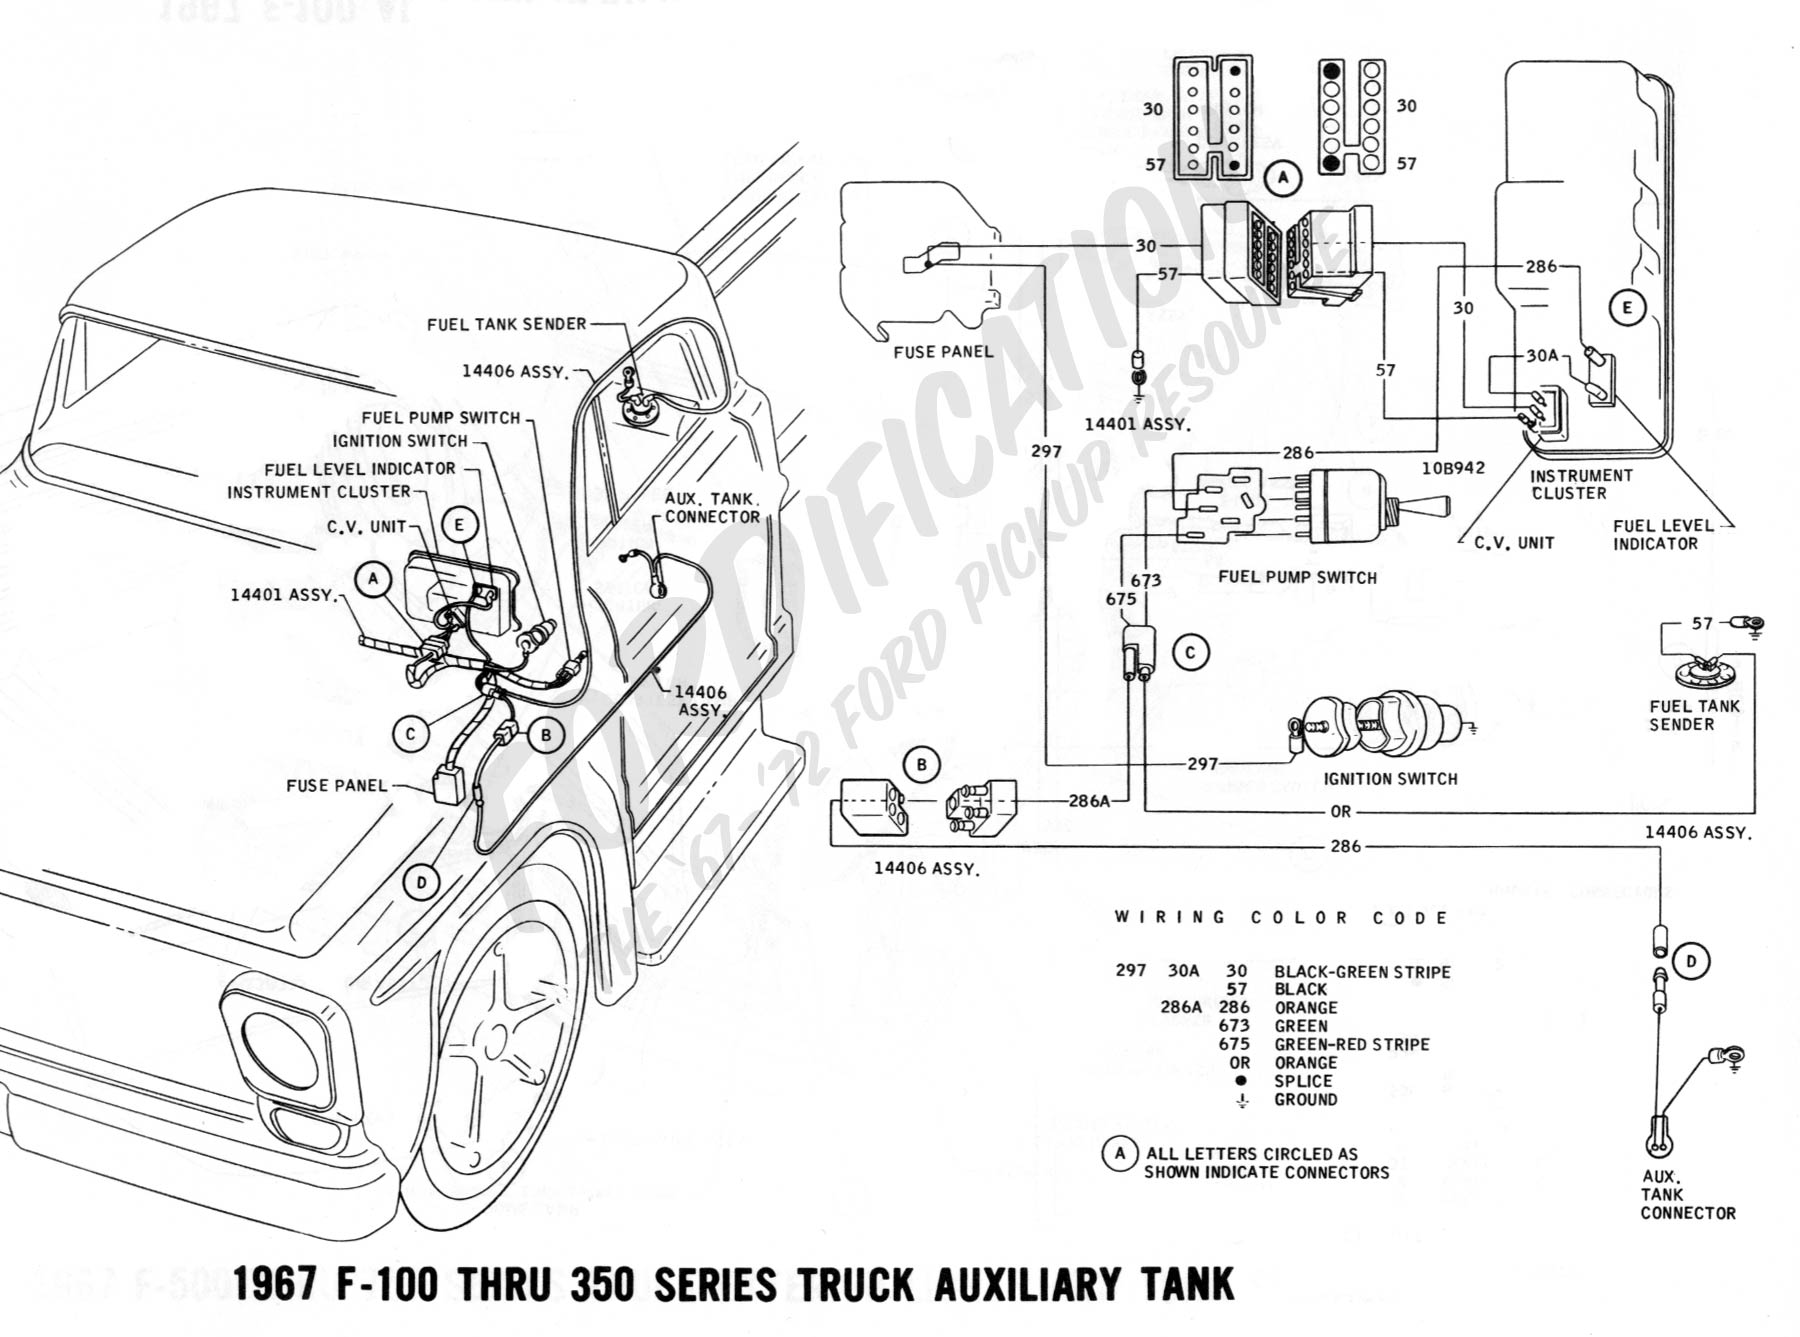 1974 ford f100 ranger fuse diagram wiring diagram used  1974 ford f100 ranger fuse diagram wiring diagram 1974 ford f100 ranger fuse diagram